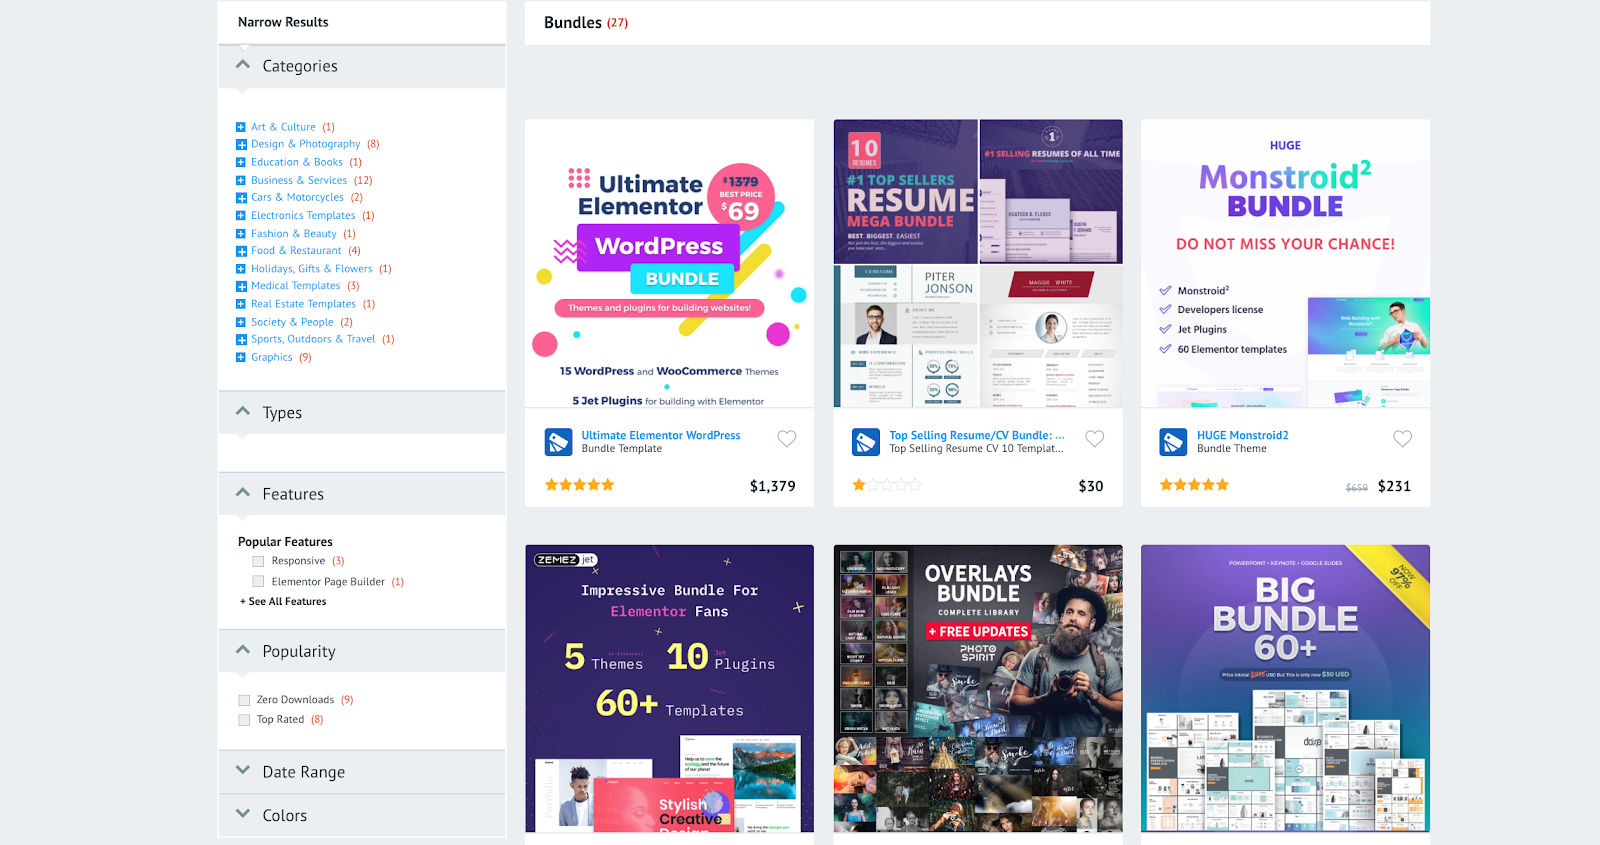 Bundles are a great solution for web designers